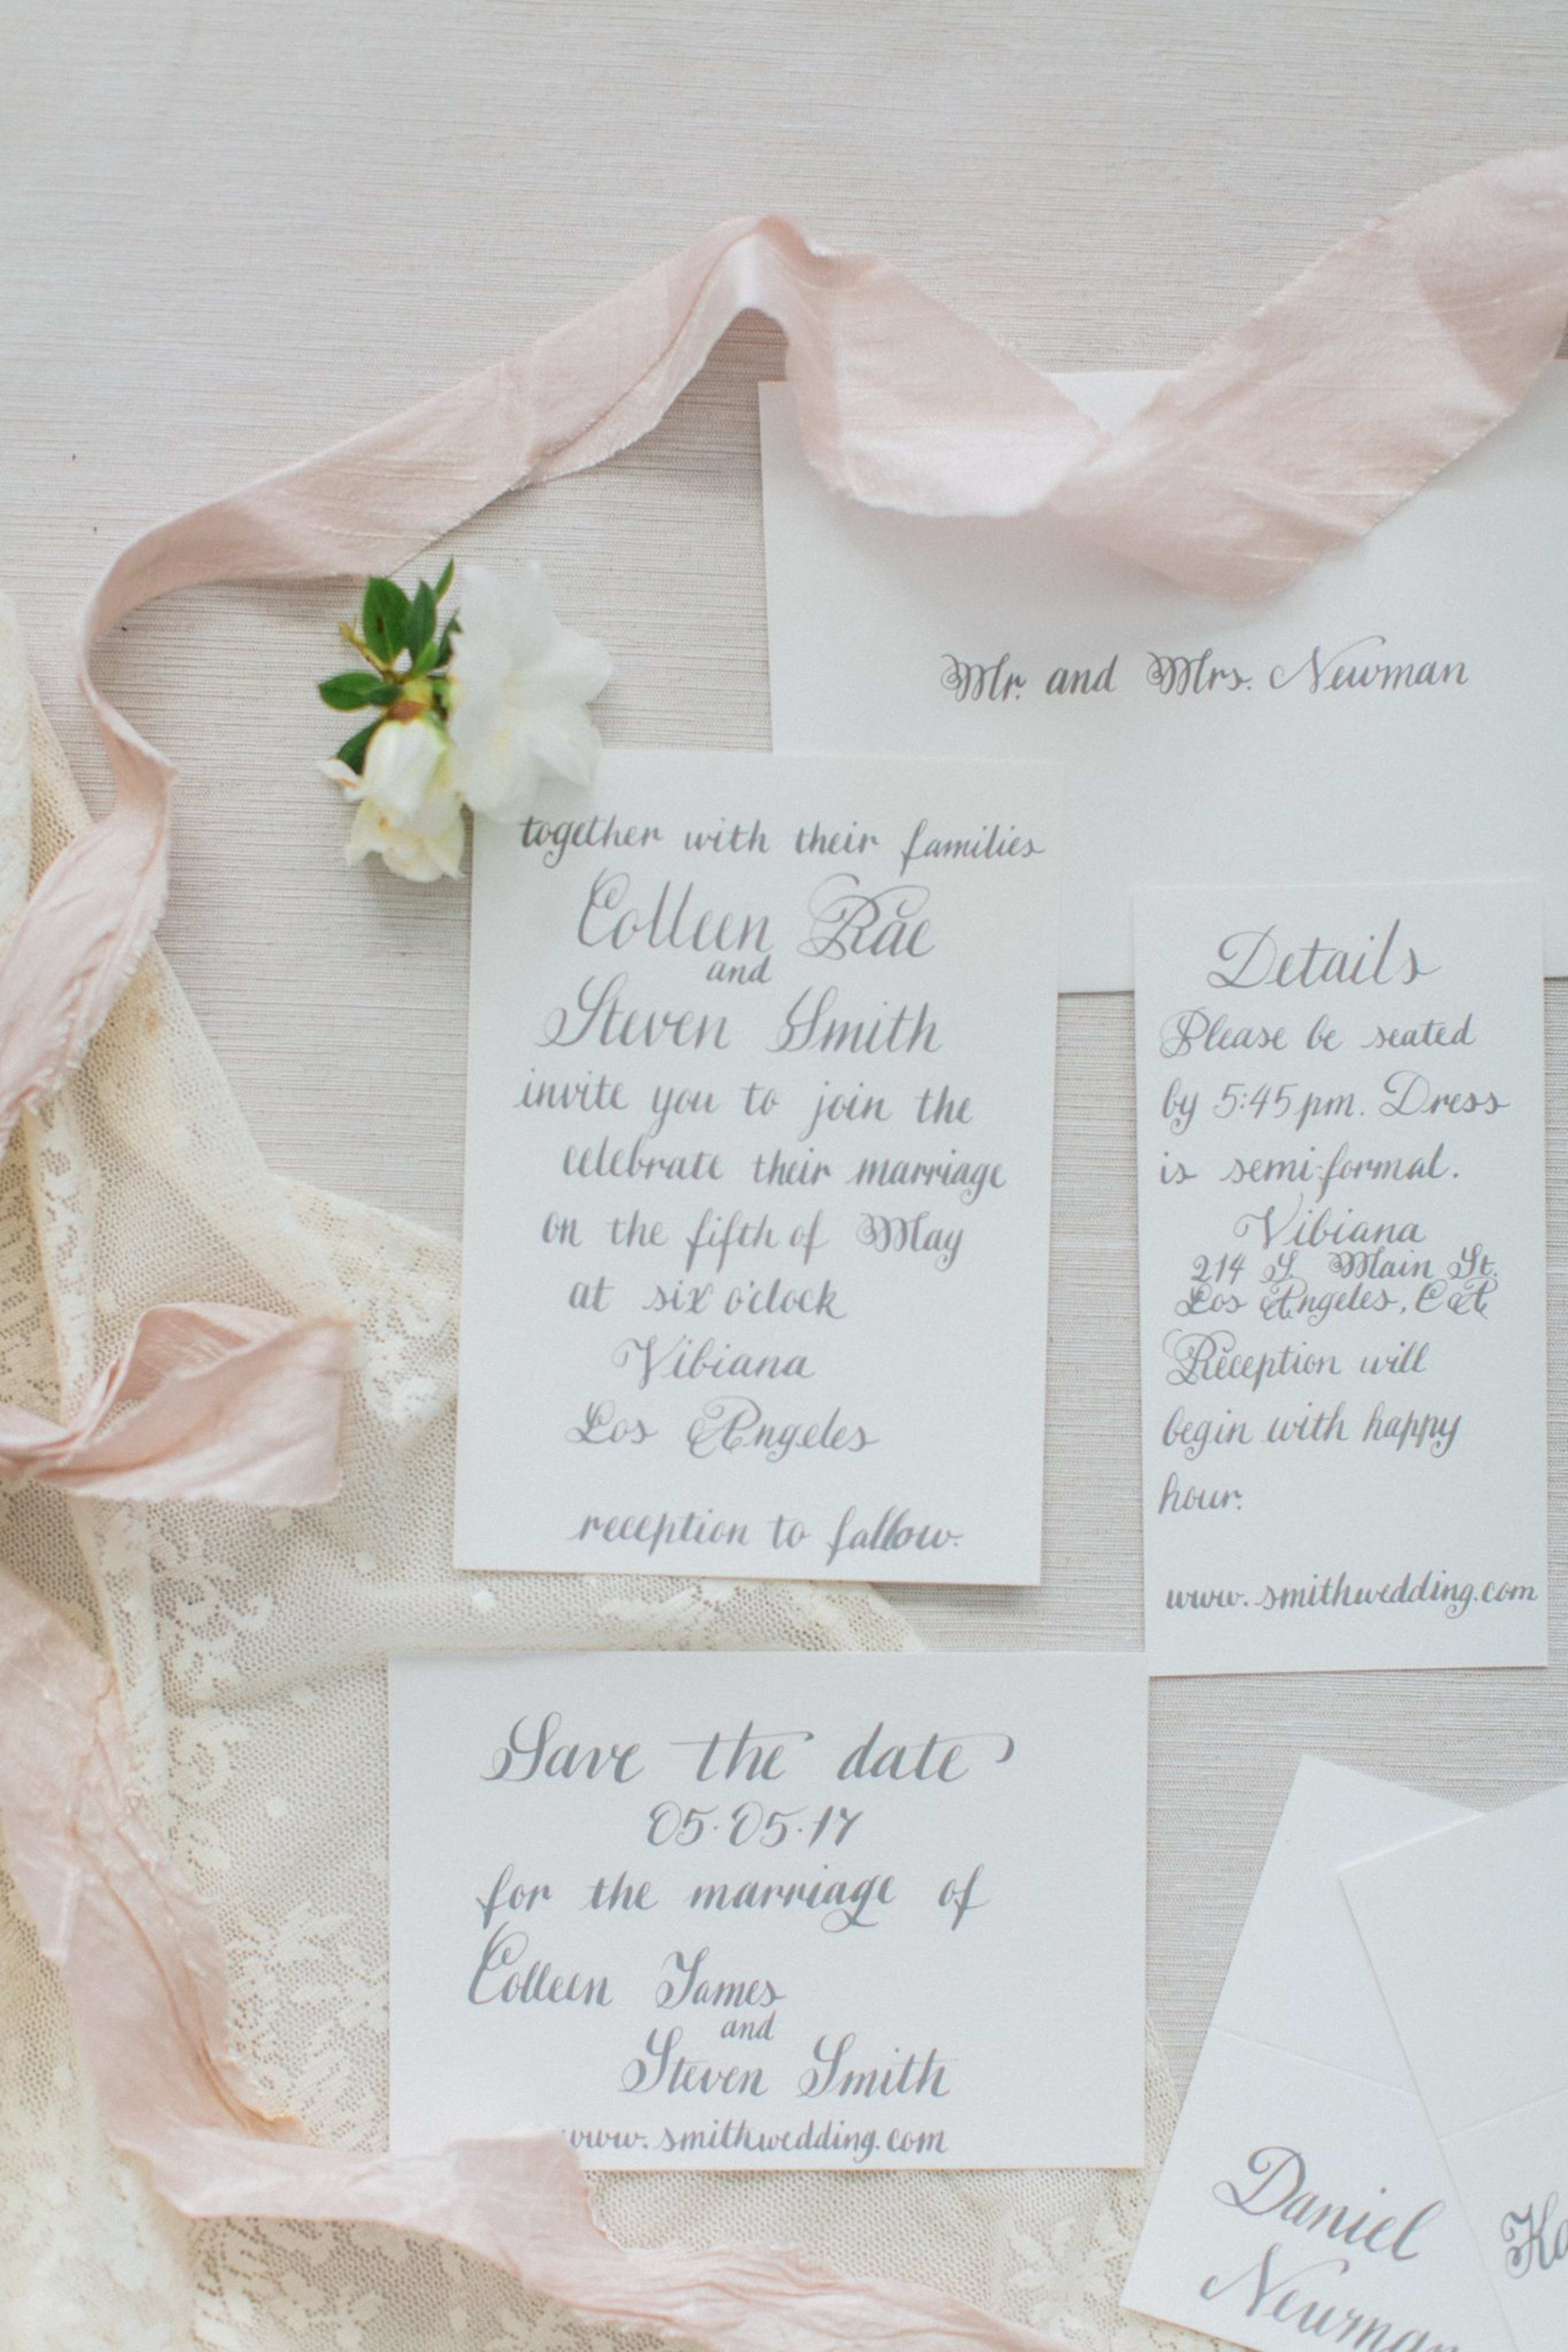 View More: http://sarahbrookephotos.pass.us/invitationsuite